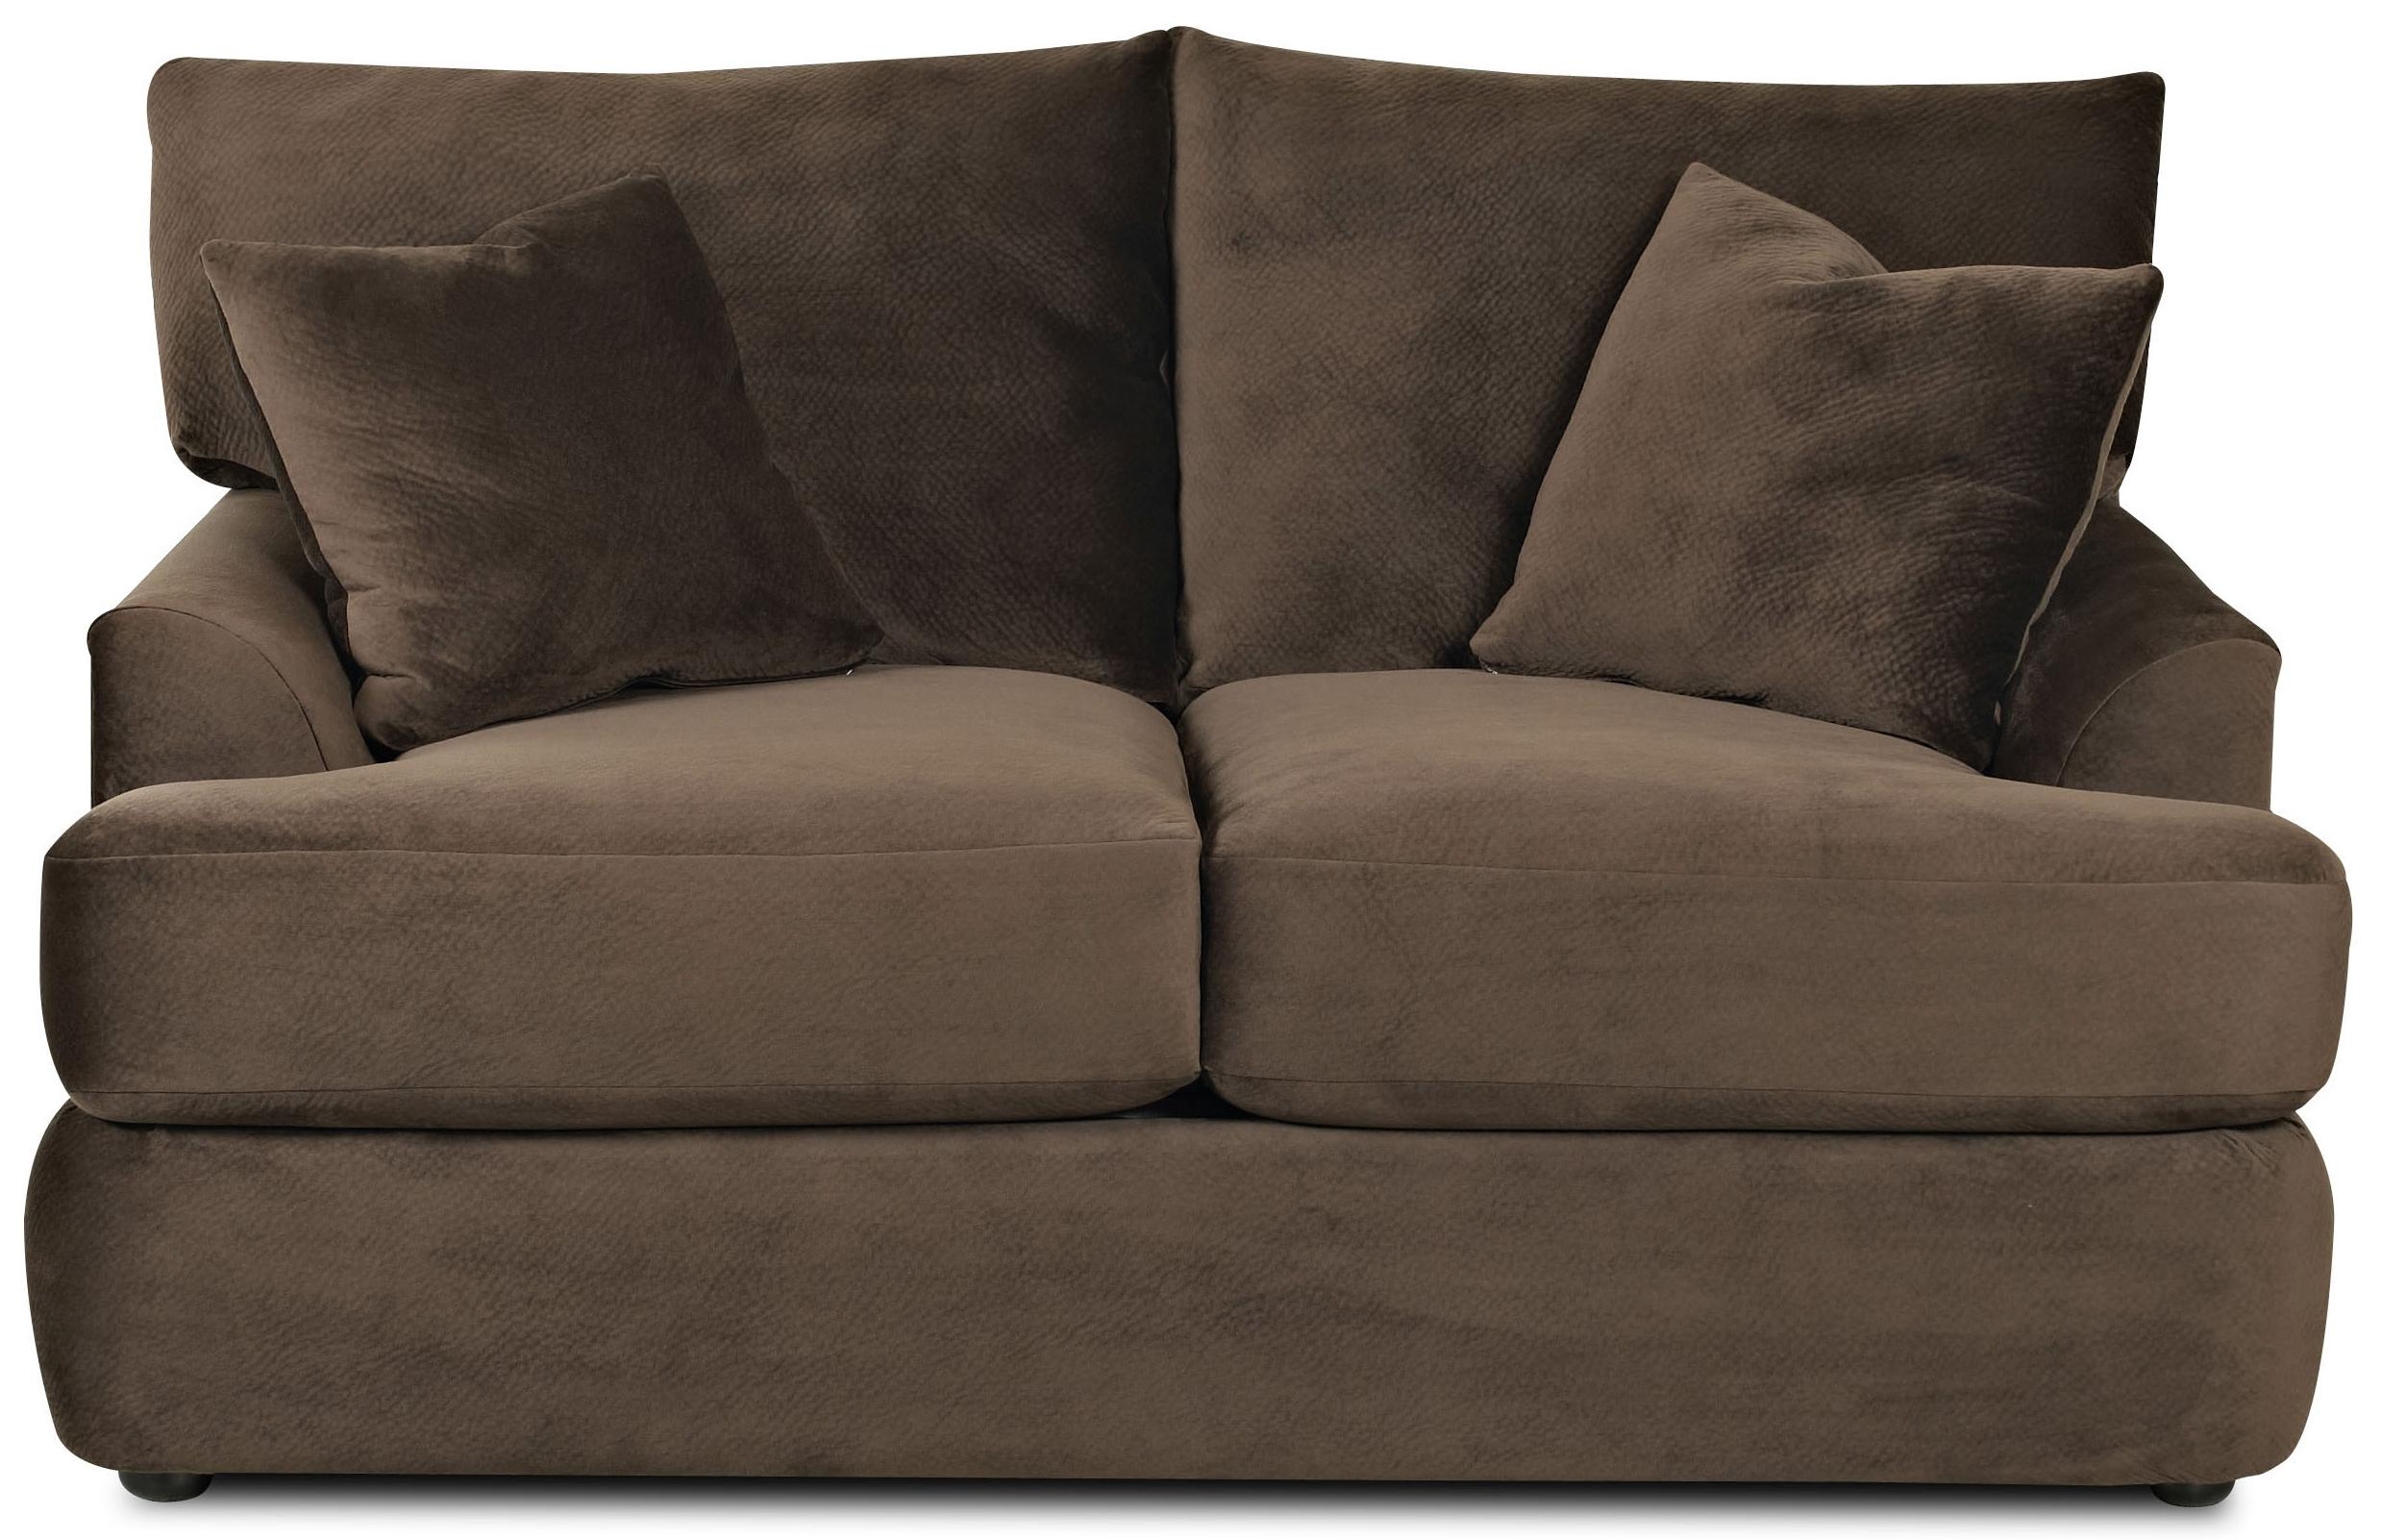 Findley Loveseat by Klaussner at Lapeer Furniture & Mattress Center